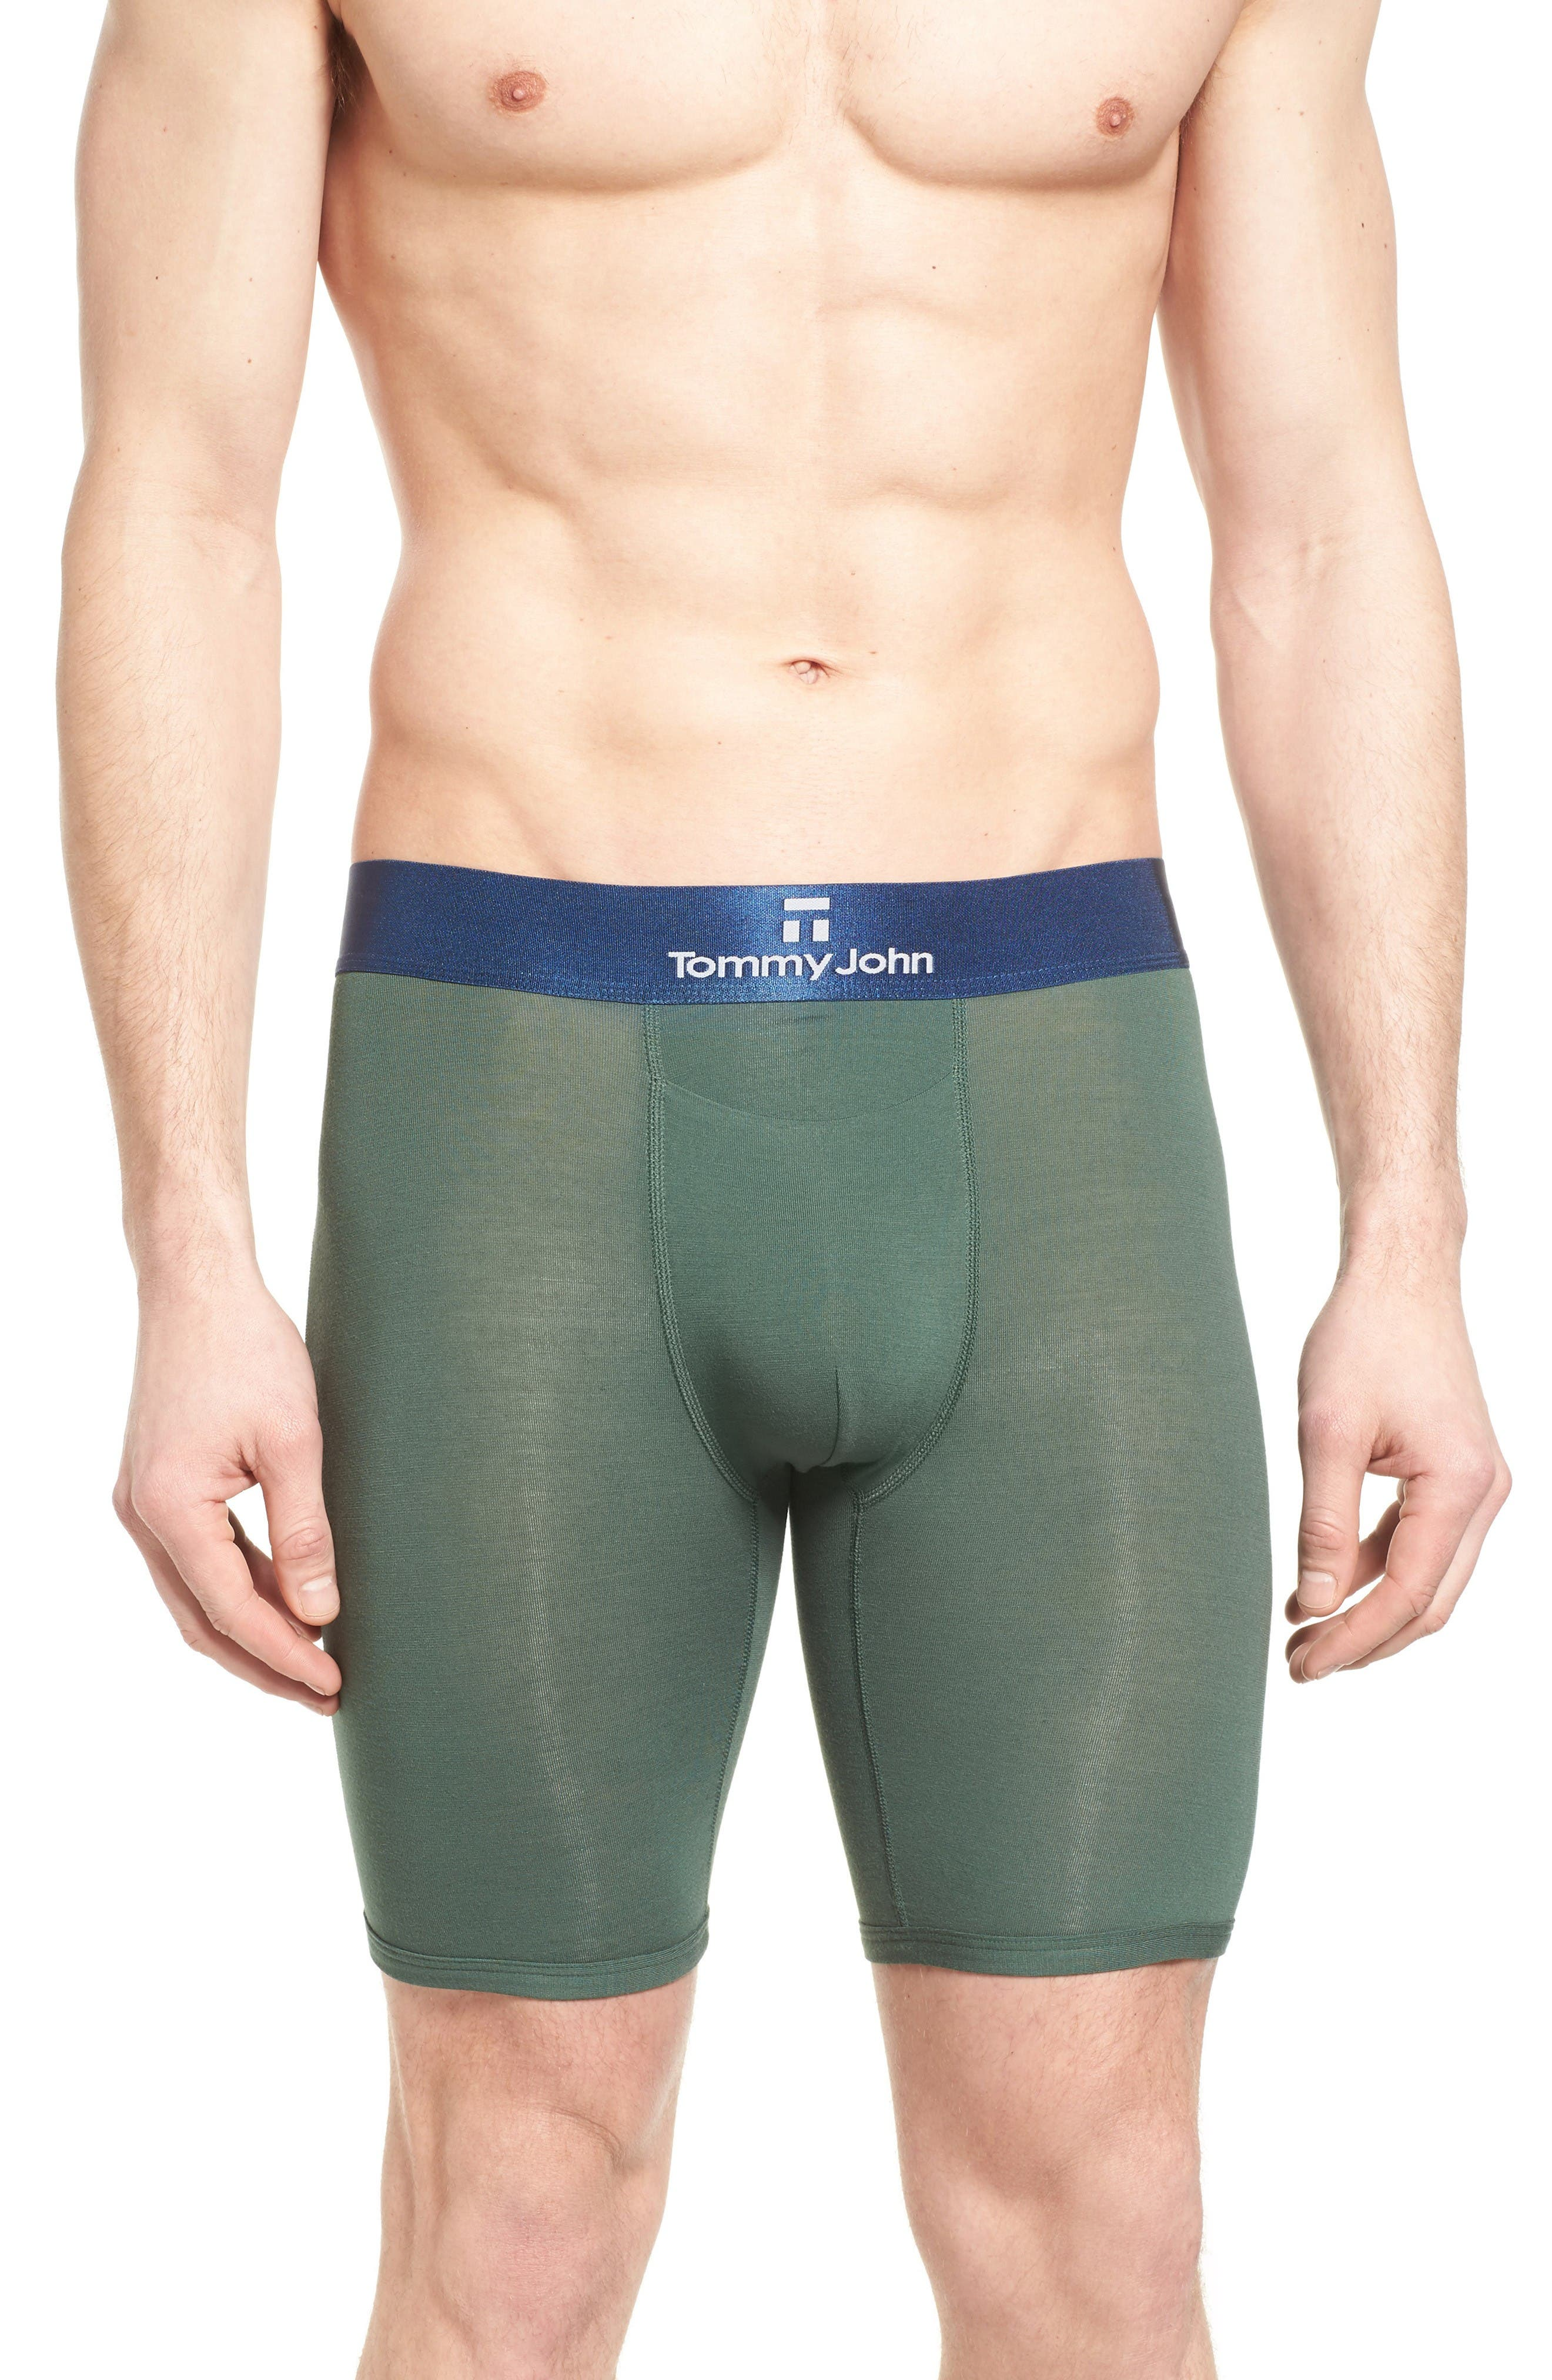 Tommy John Second Skin Micromodal Boxer Briefs